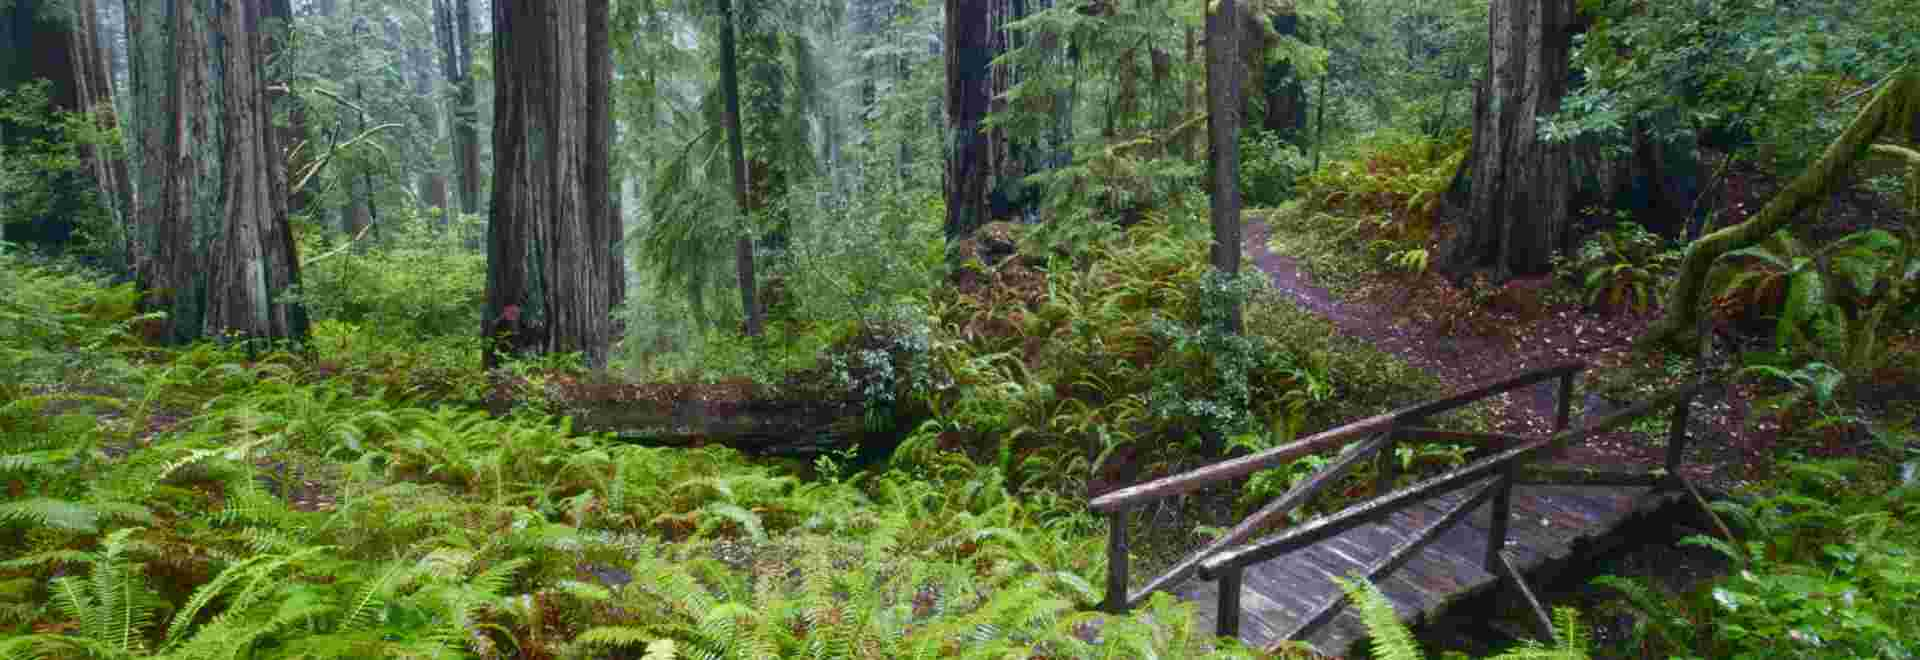 Jedediah Smith Redwoods State Park, a trail meandering through the Redwoods.